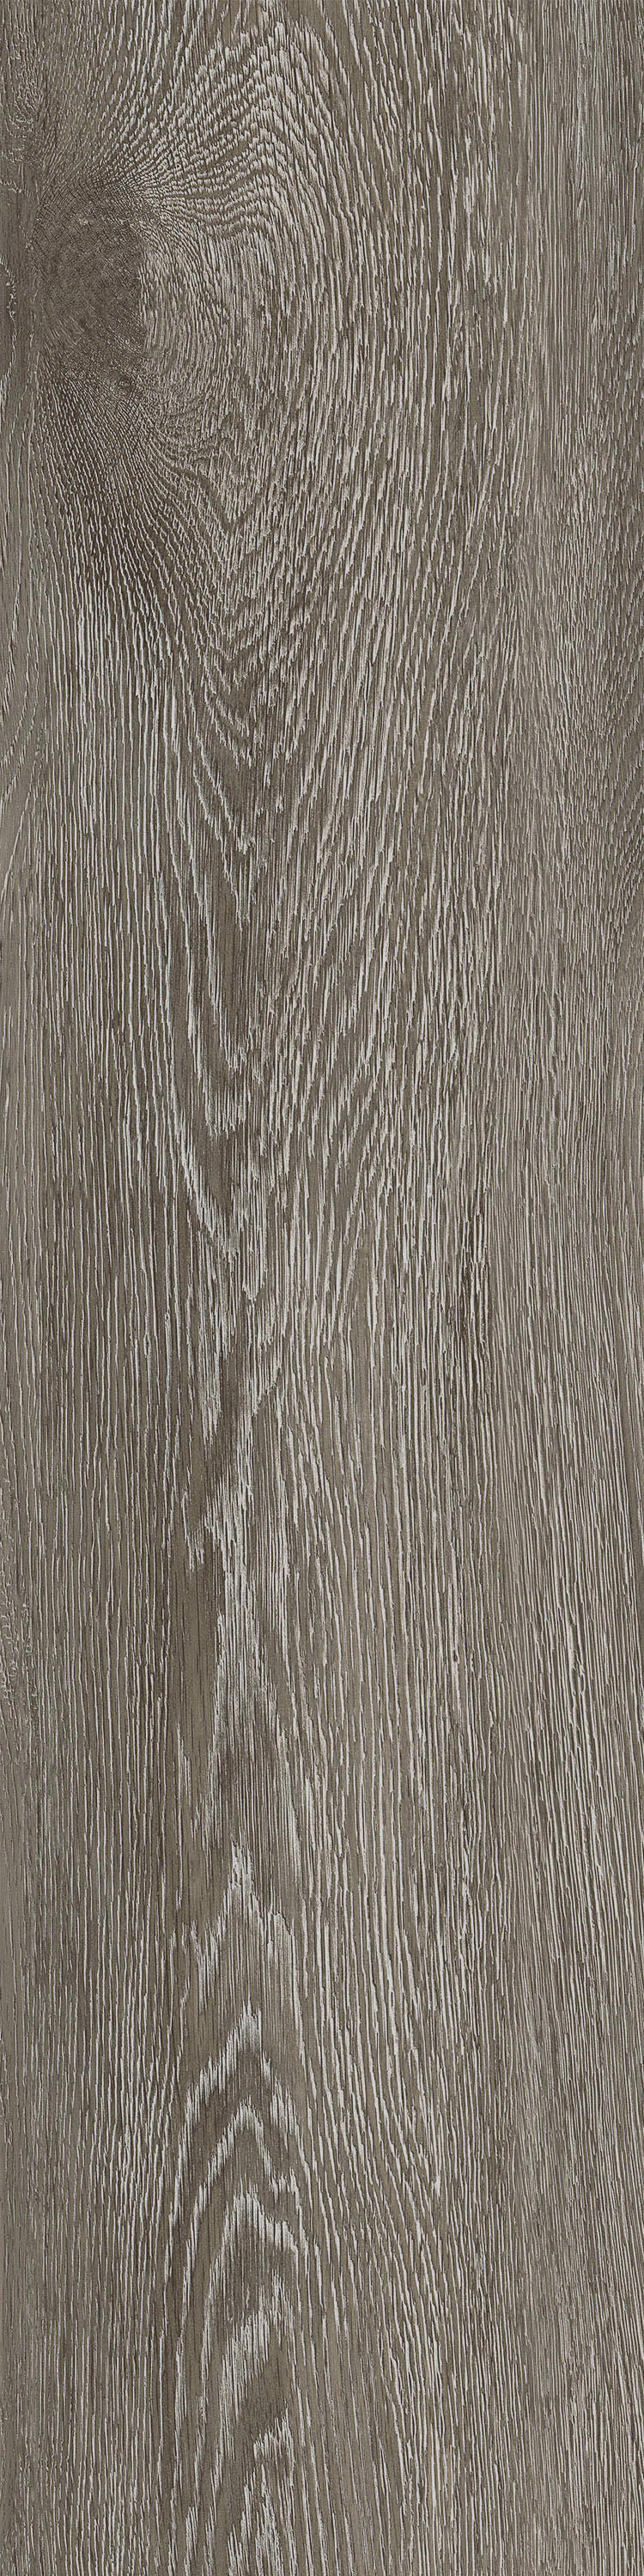 Level Set Textured Woodgrains A00405 Grey Dune Synthetic